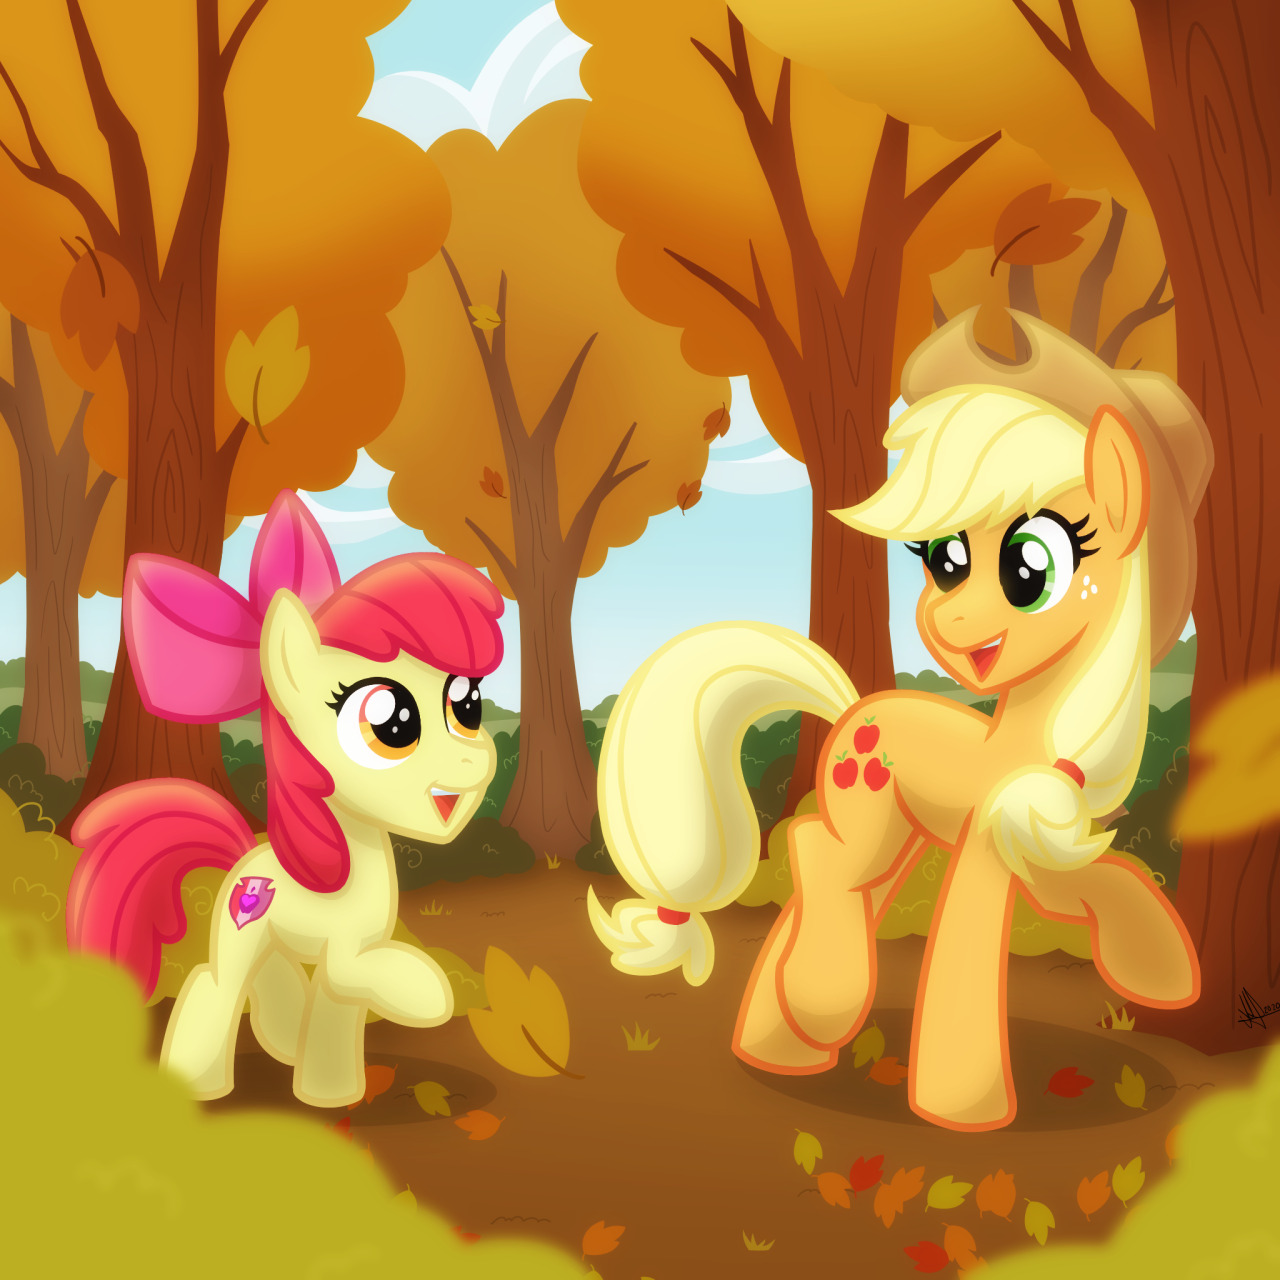 This is my favorite season of the year. Not too cold, not too hot. Also, I wanted to illustrate Apple bloom, didn't know when or how. Hope you like it! I'm grateful for your comments, reactions and even more when you share my illustrations. Thank you! #wq#white quartz#wqtheartist #white quartz the artist #mlp#mlpfim #My Little Pony  #my little pony friendship is magic #applejack#apple bloom#applejack mlp #apple bloom mlp #autumn#leaves#autumn leaves